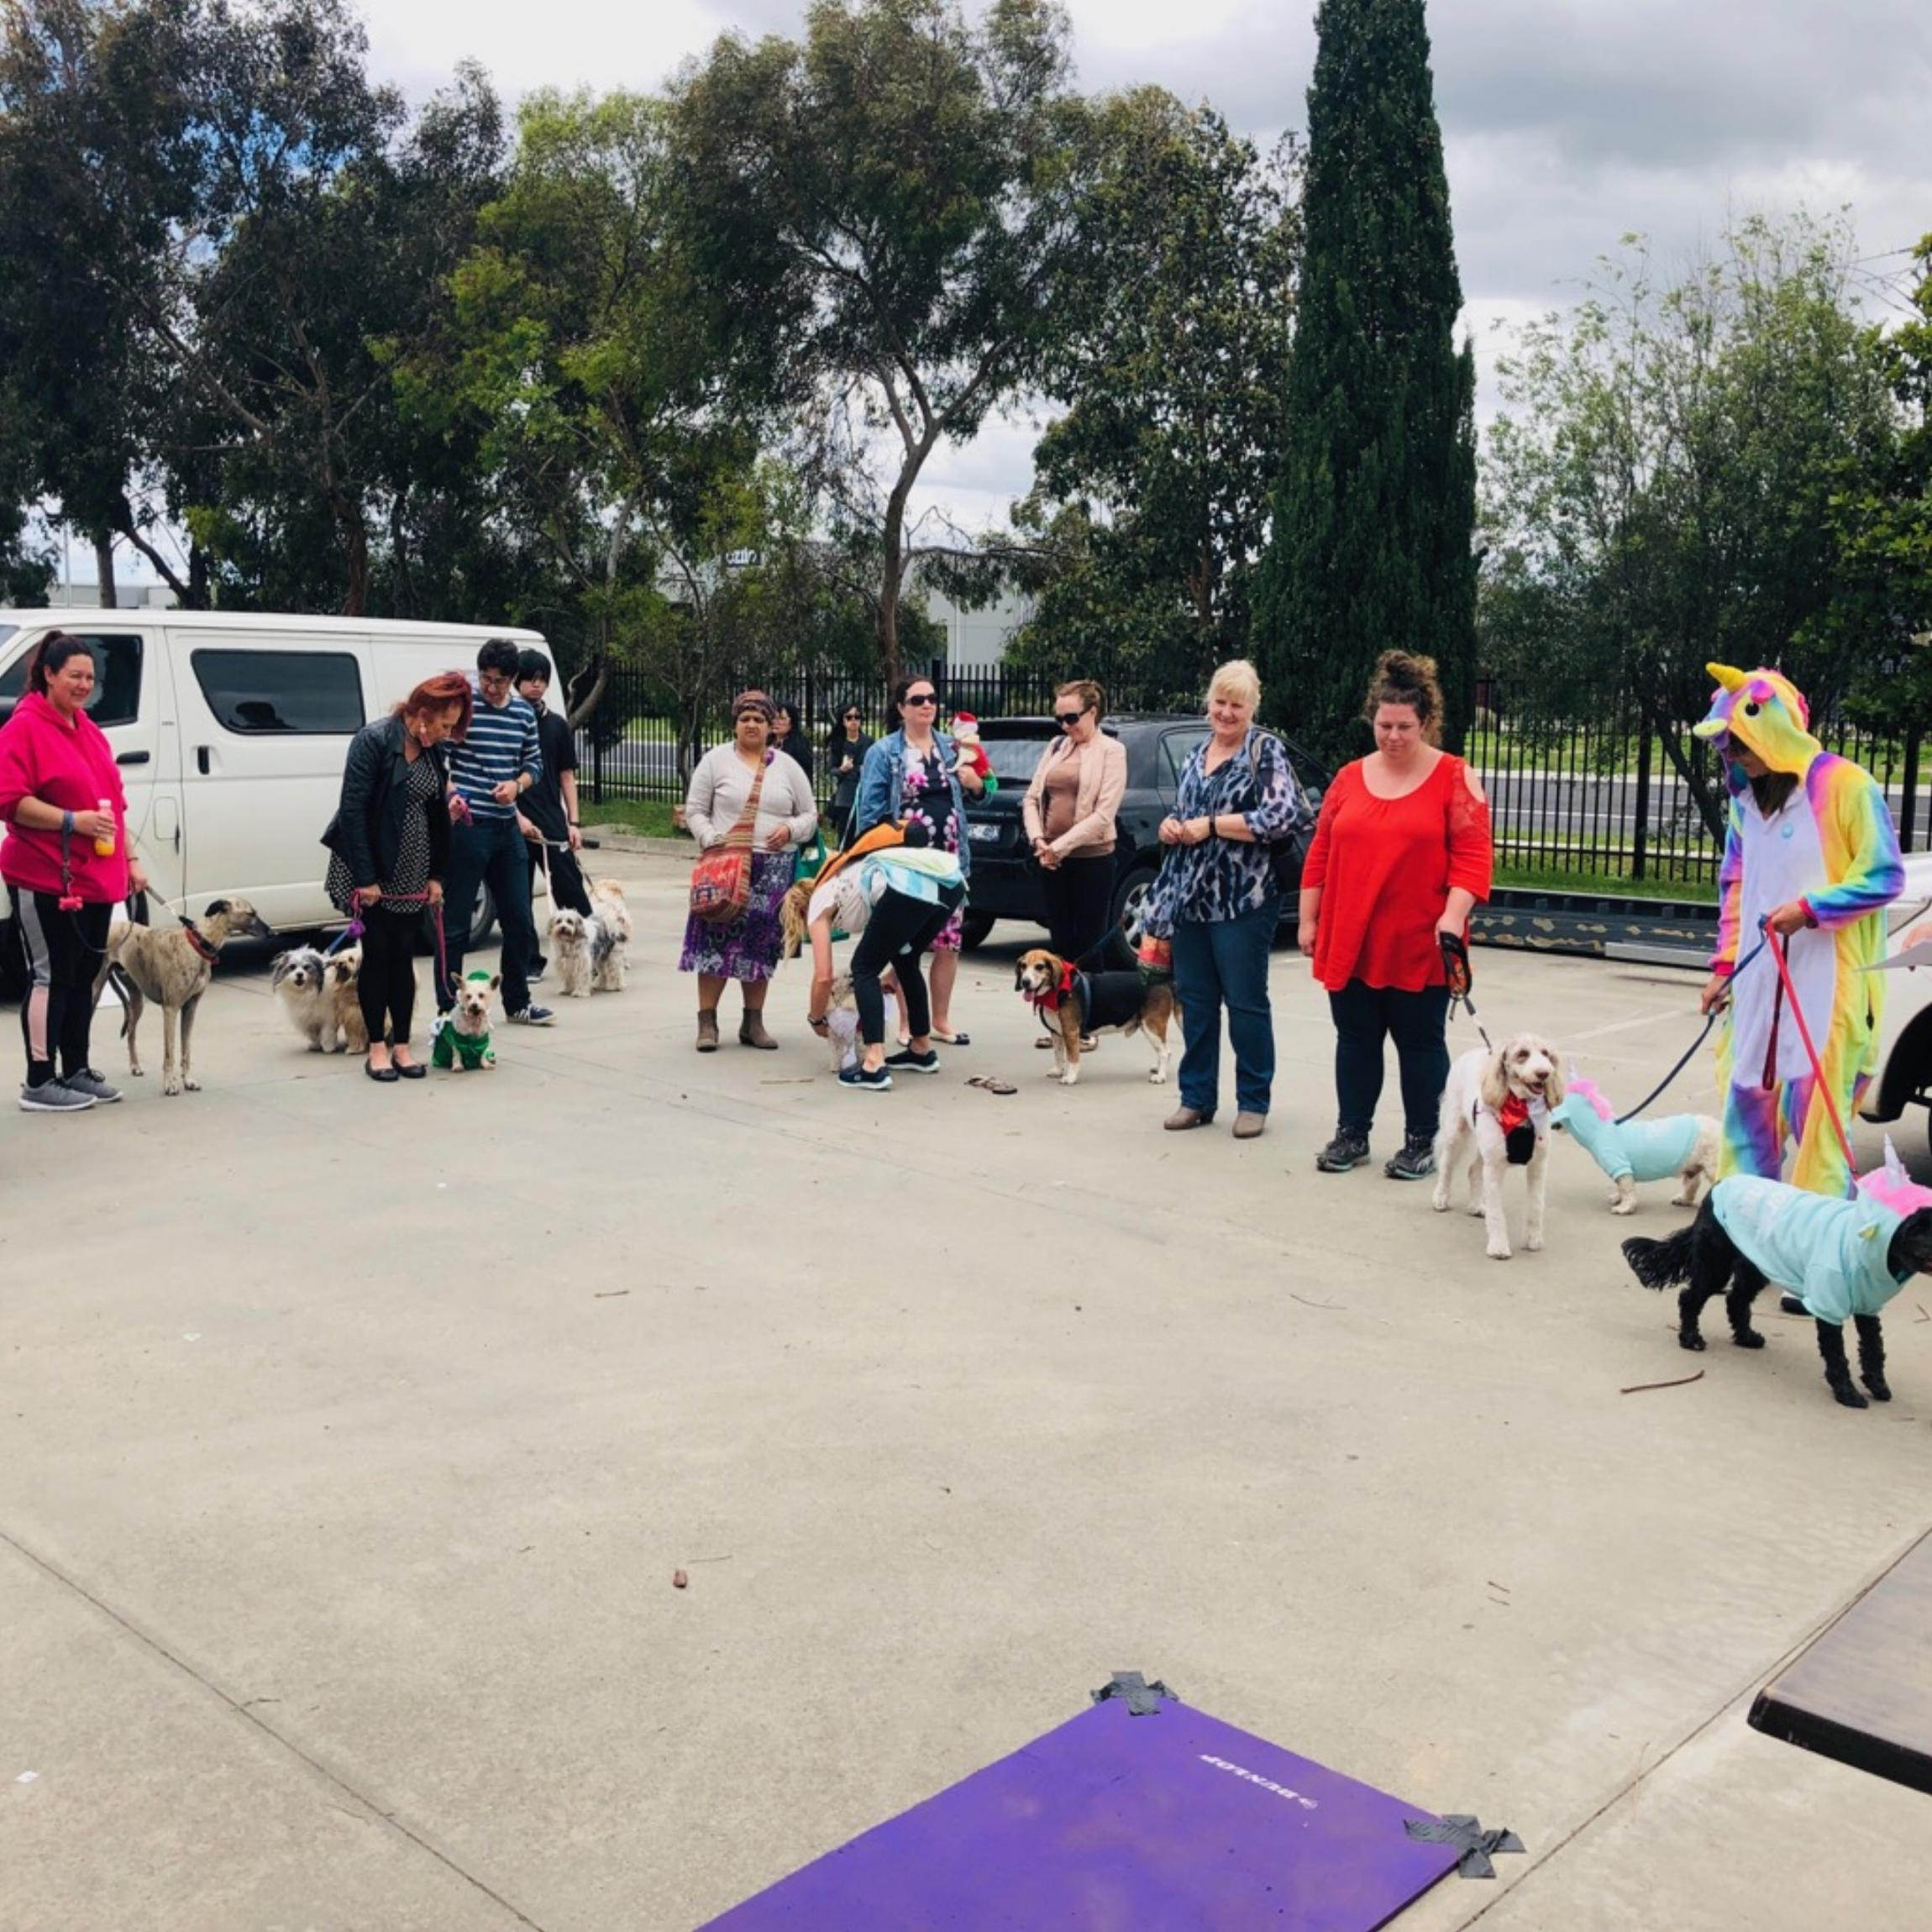 the dynamic doggy parade getting underway